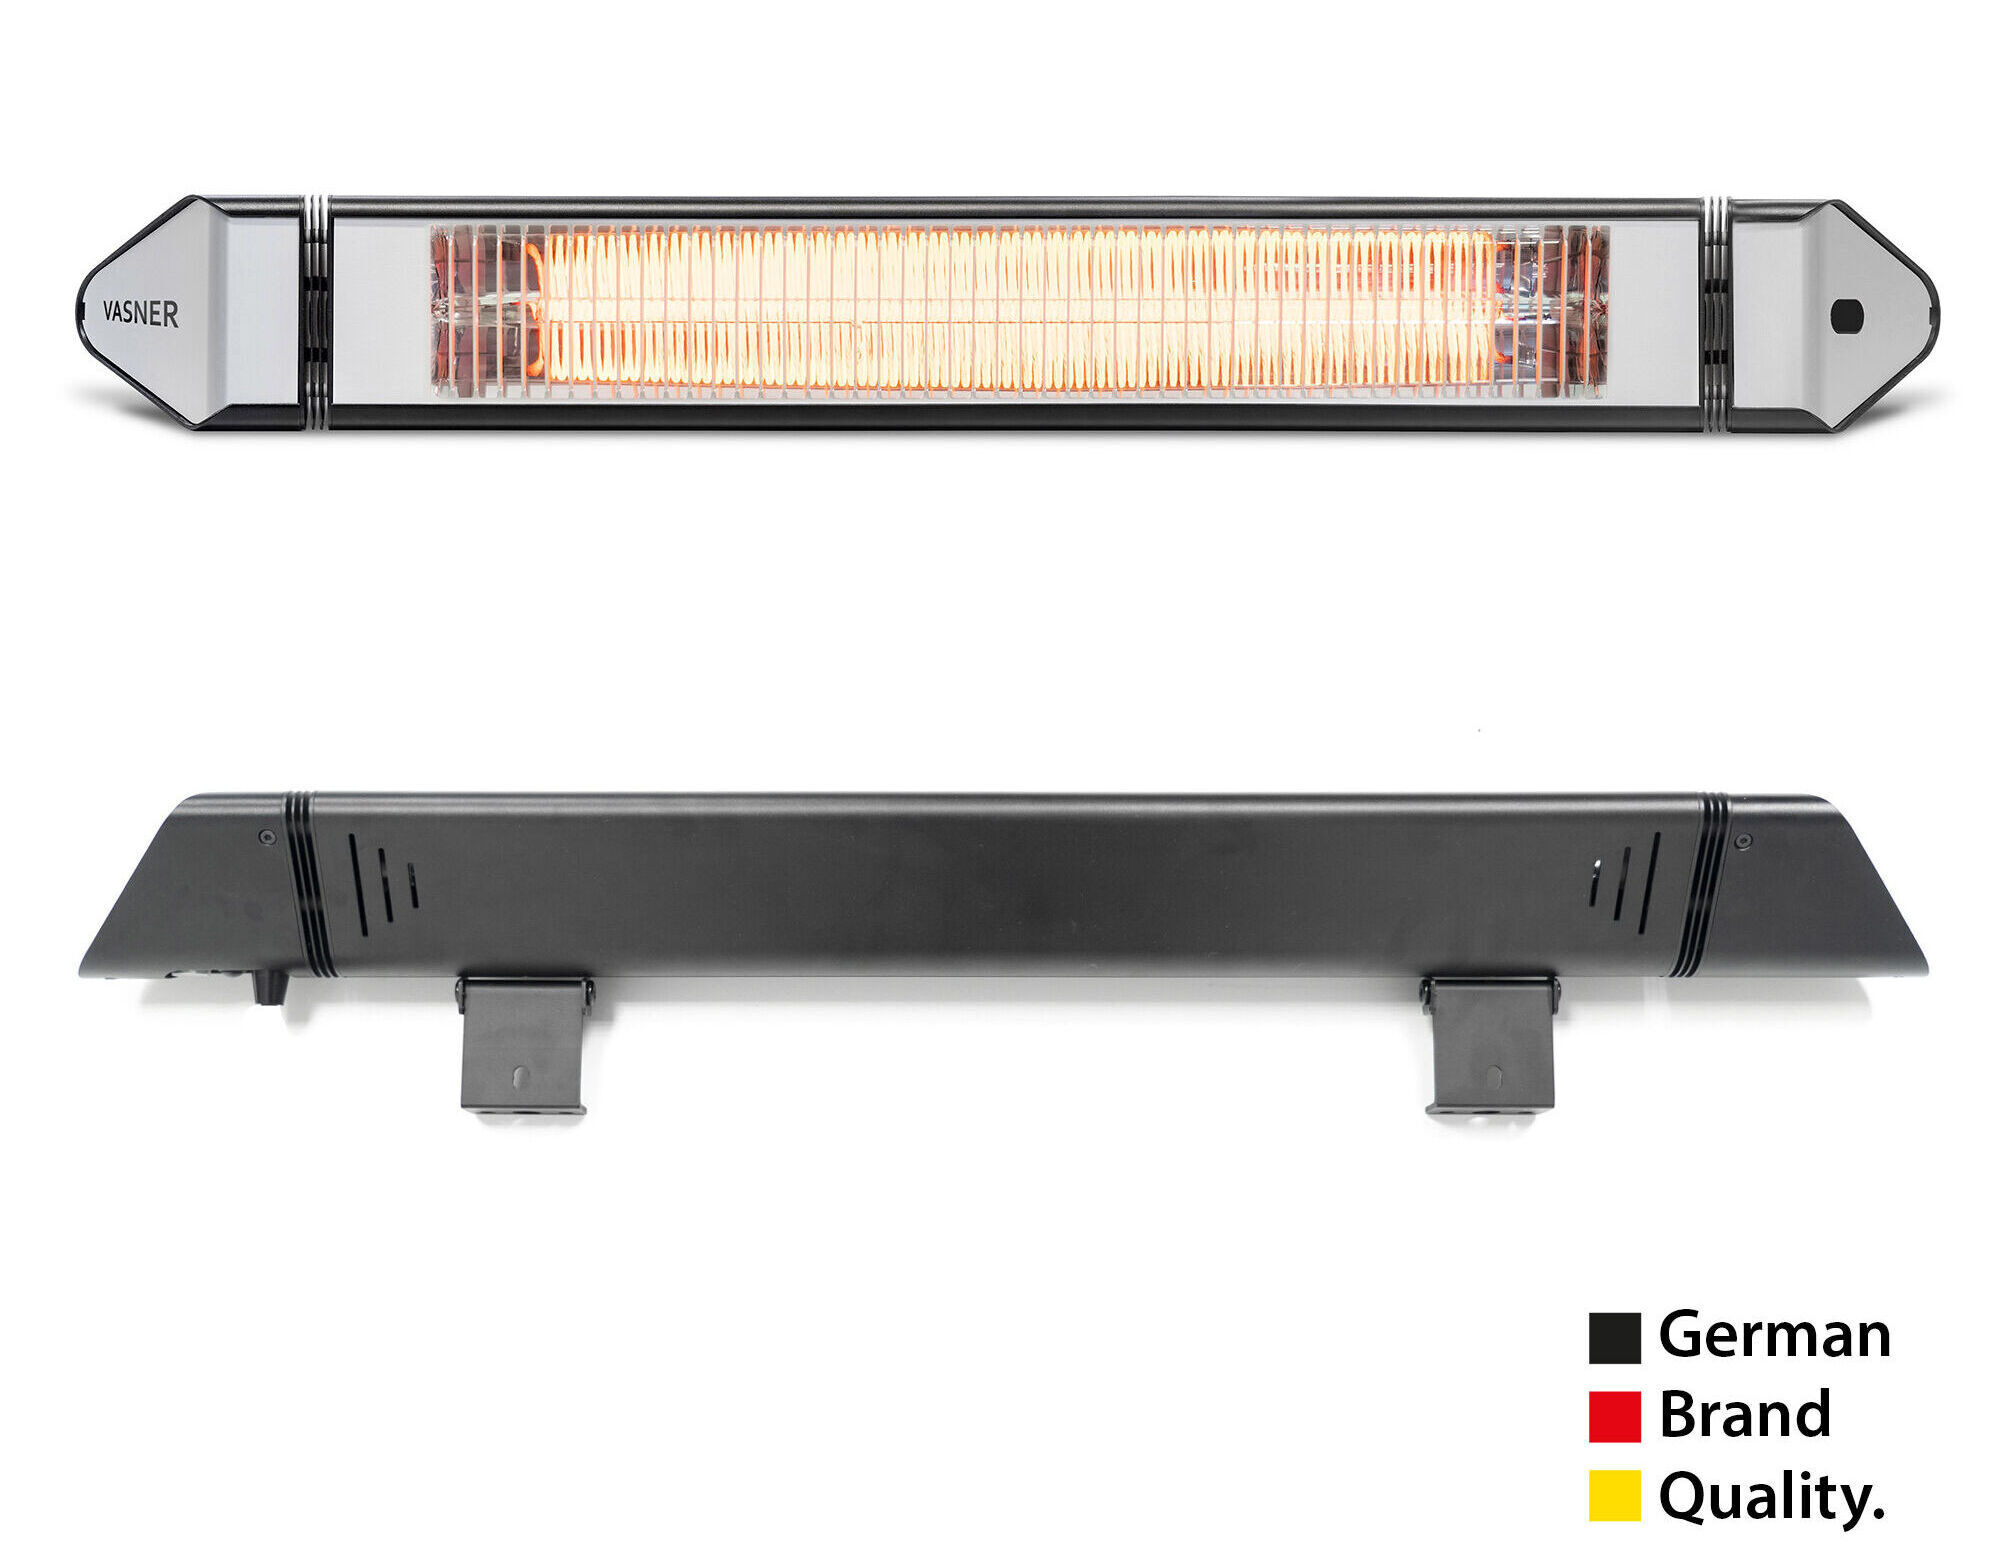 Electric patio heater by German manufacturer